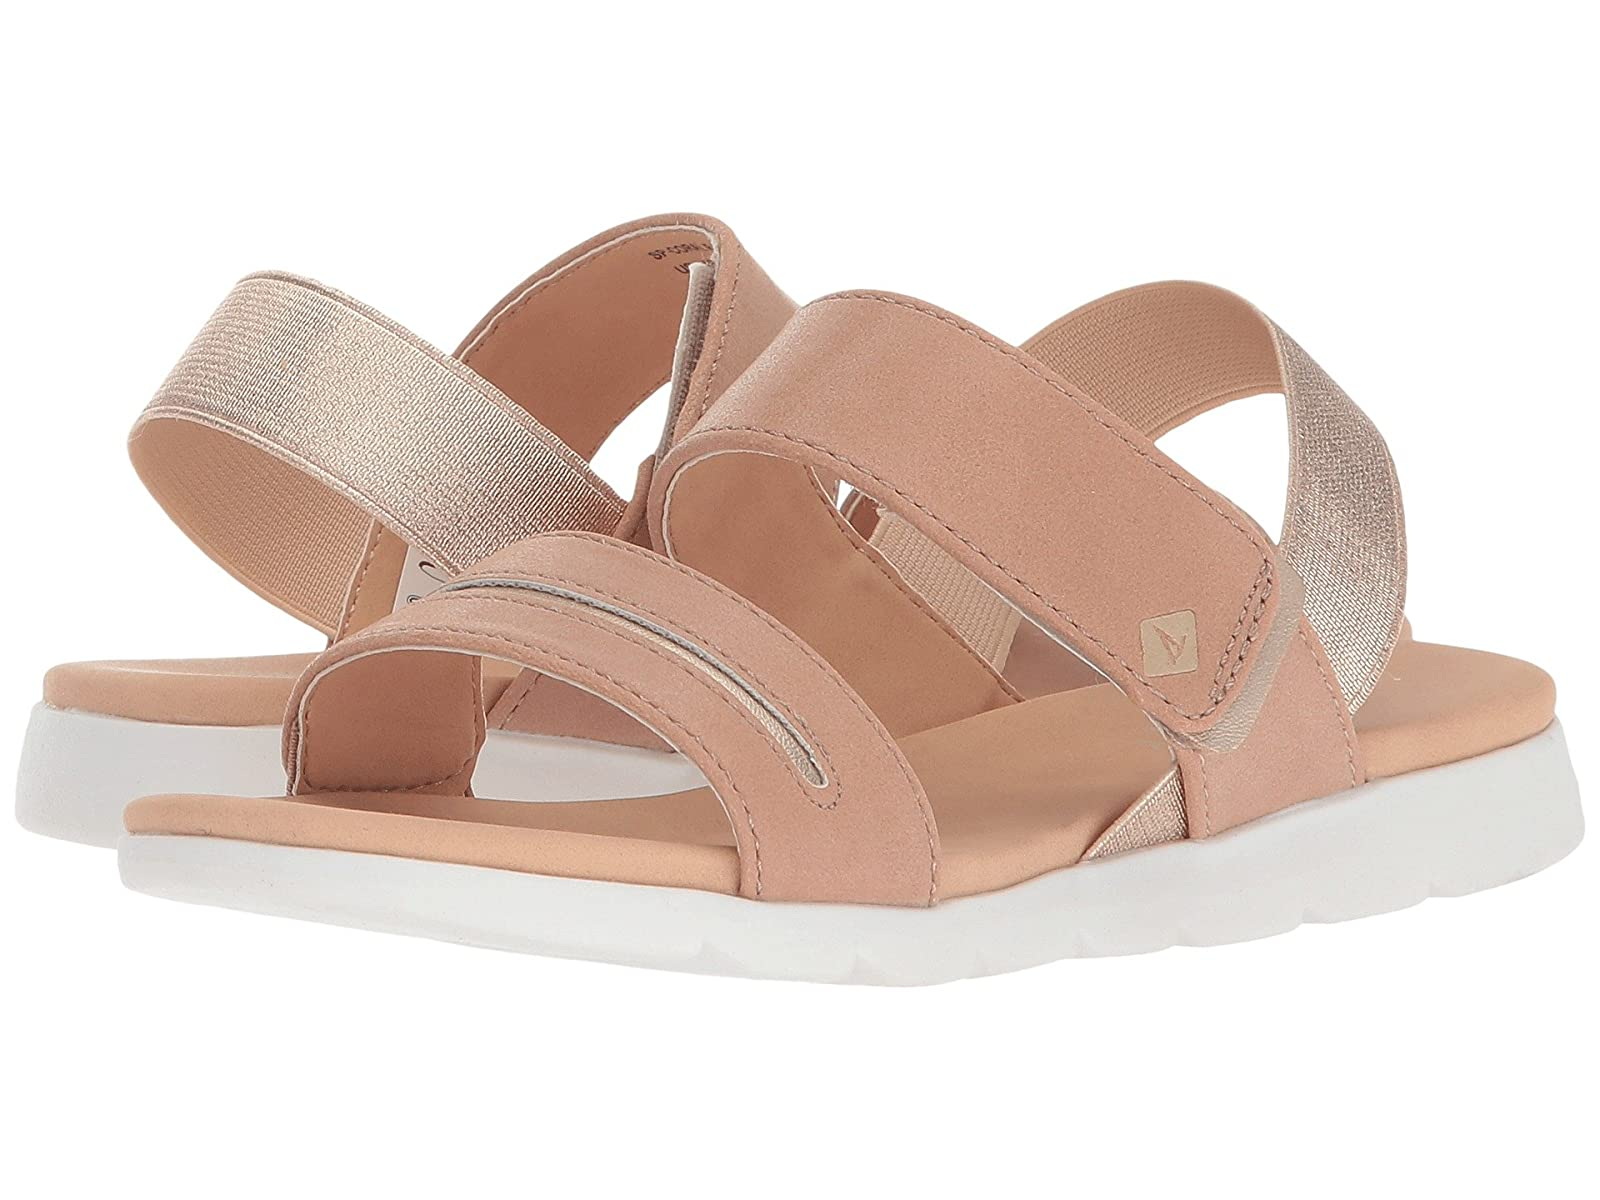 Sperry Kids Coral Ray (Little Kid/Big Kid)Atmospheric grades have affordable shoes